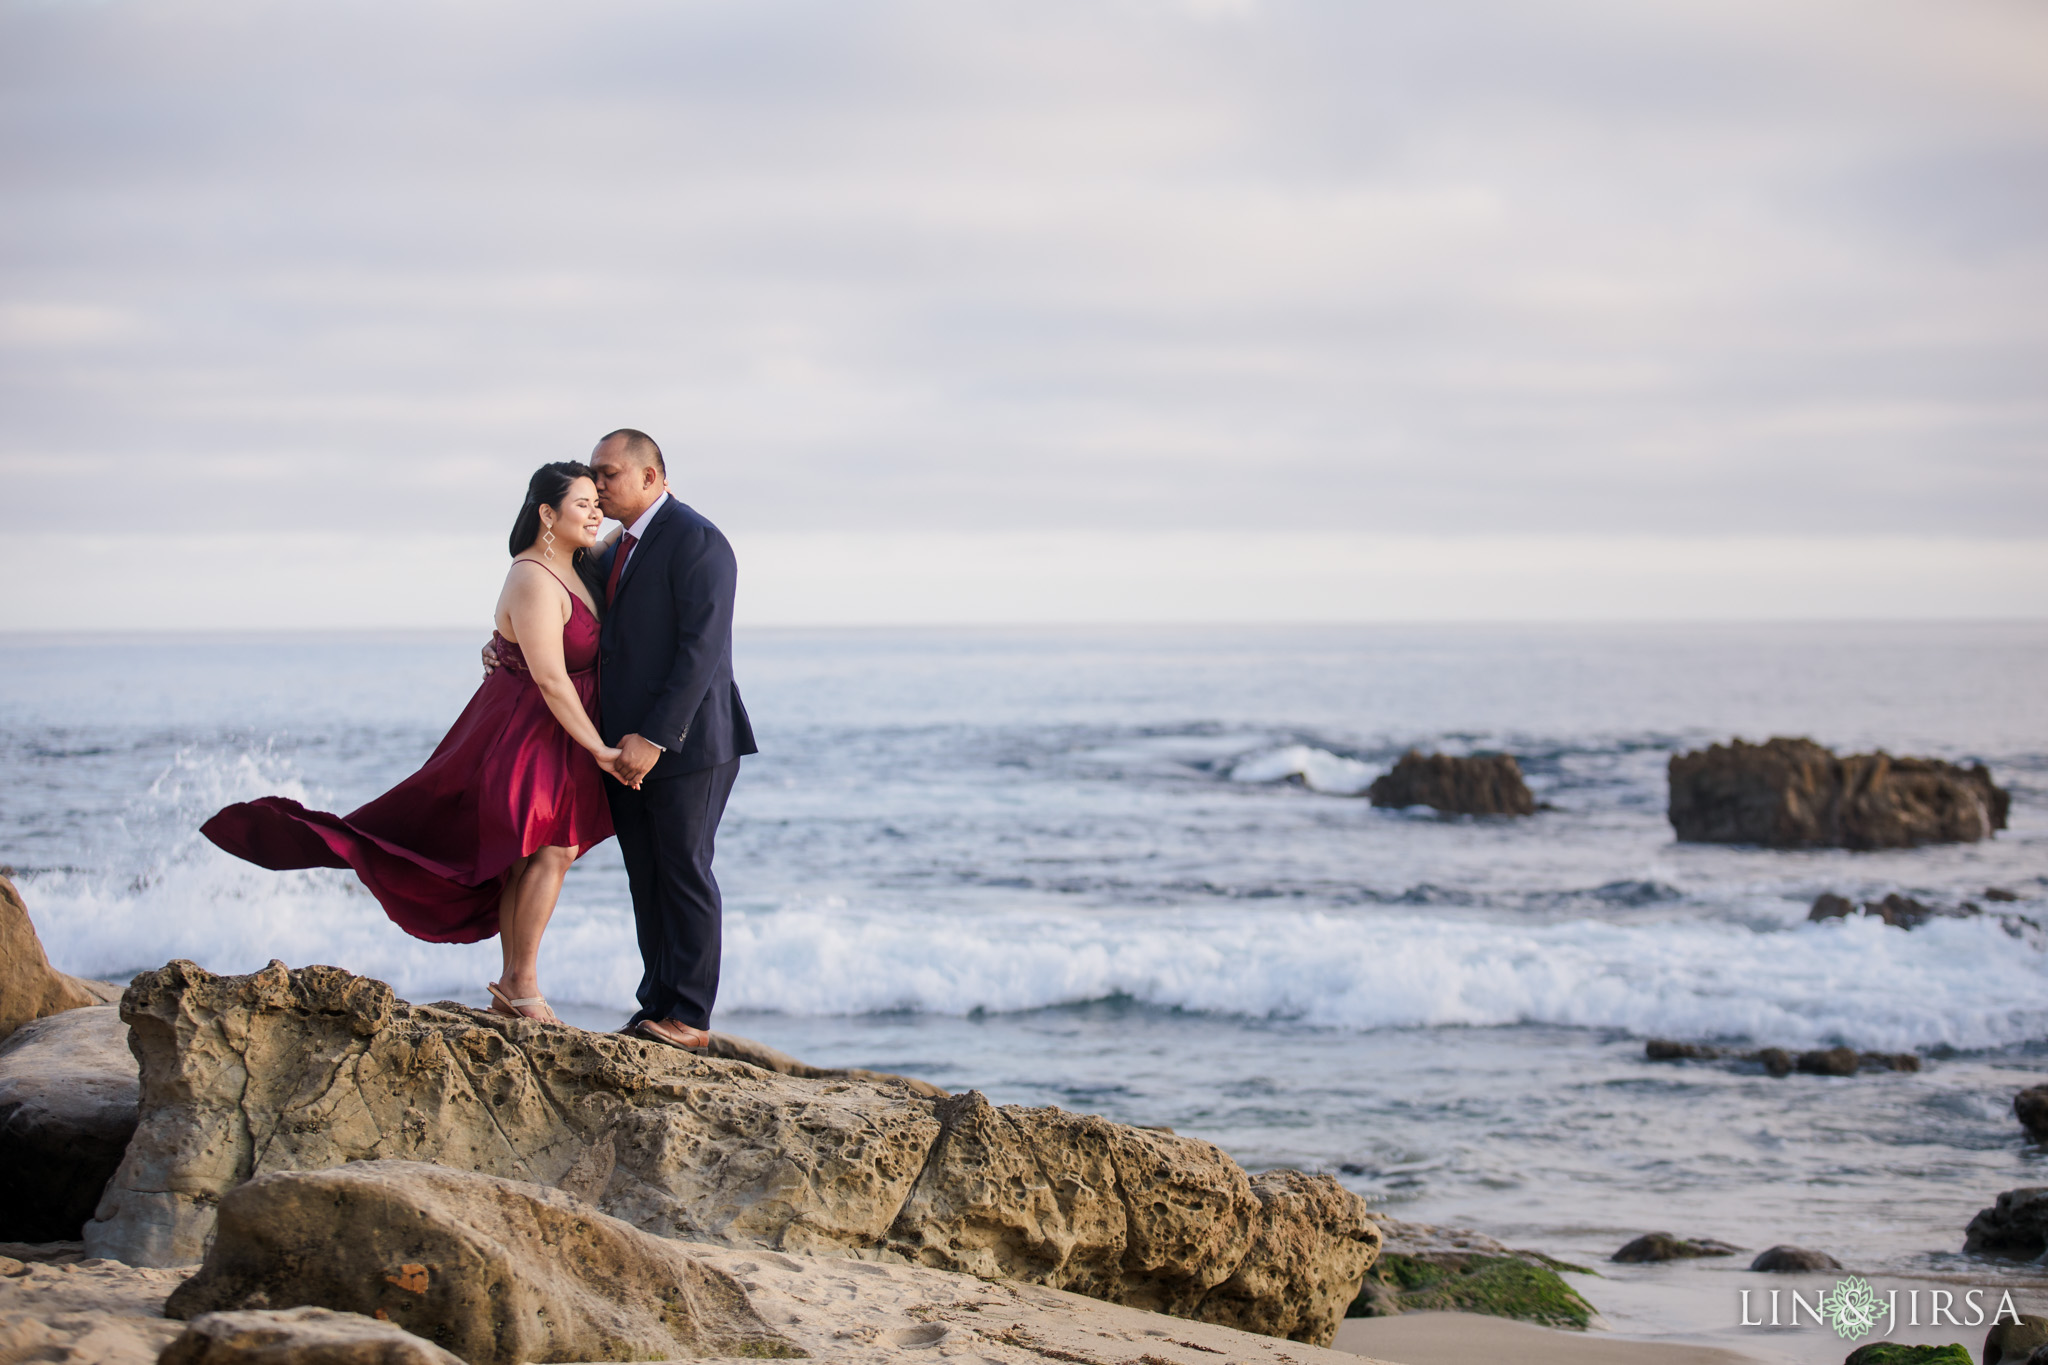 06 Heisler Park Orange County Engagement Photographer